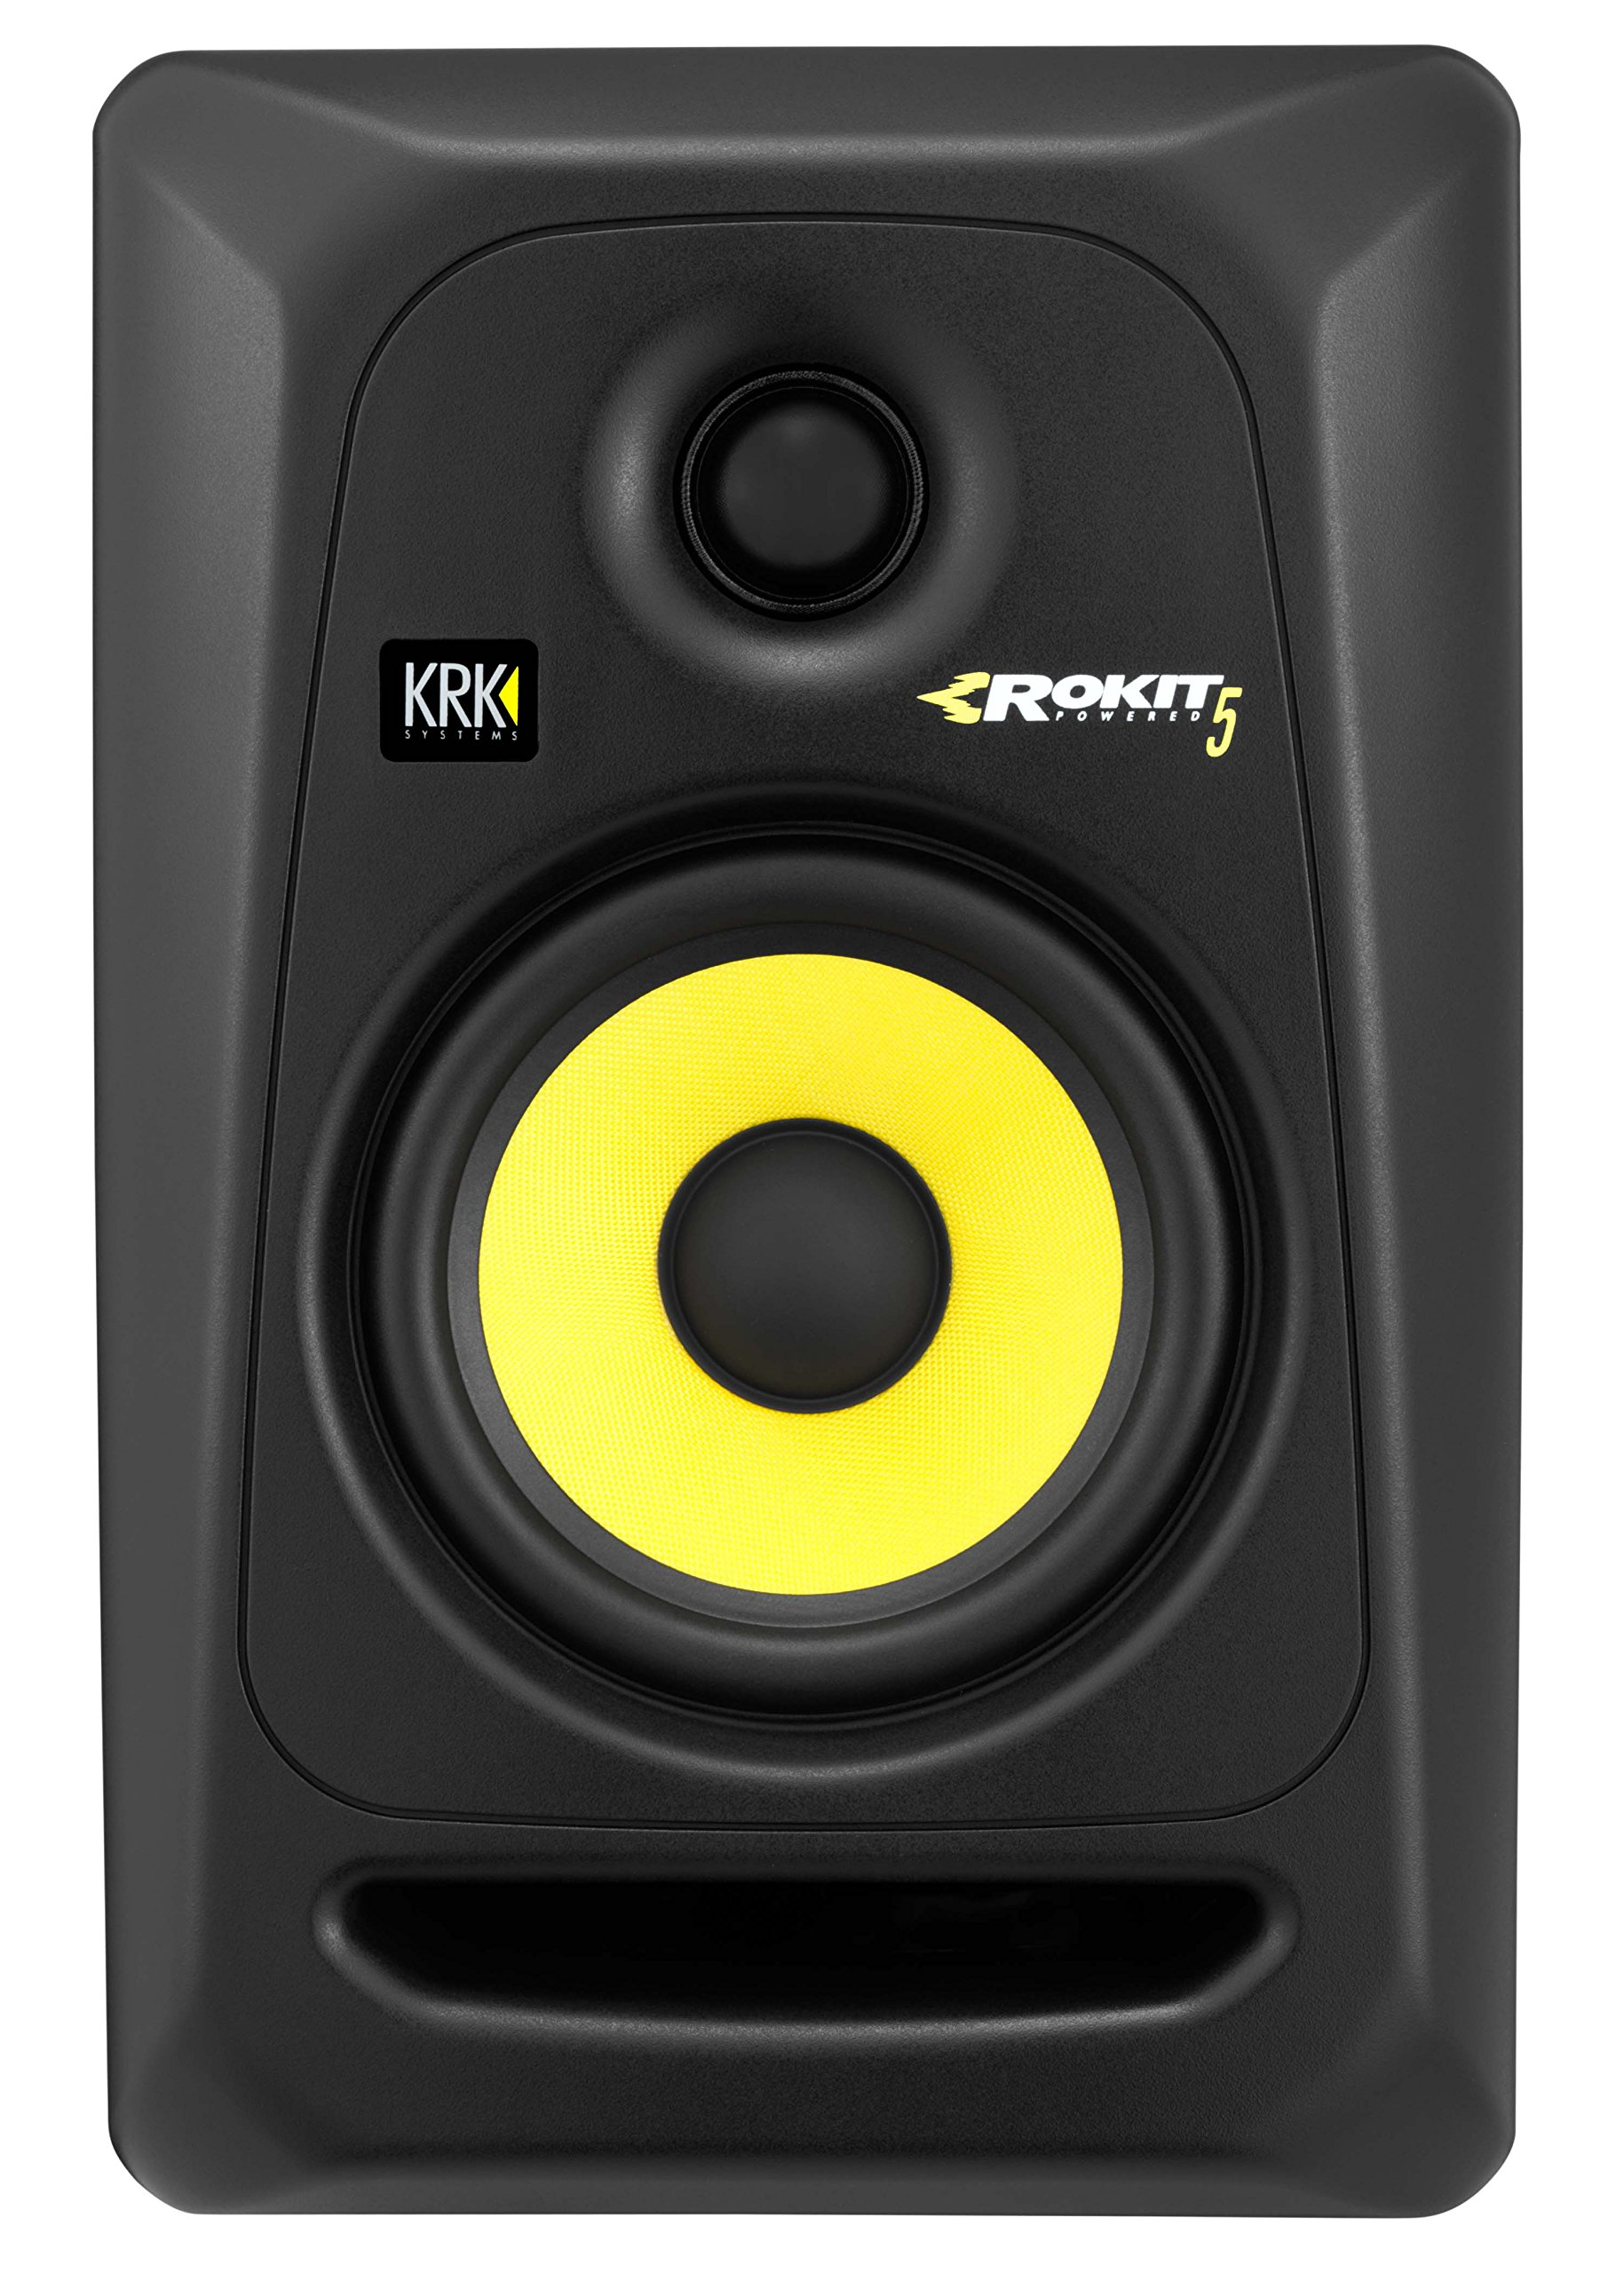 KRK RP5G3 ROKIT 5 G3 5'' 2-Way Powered Studio Monitor, Black